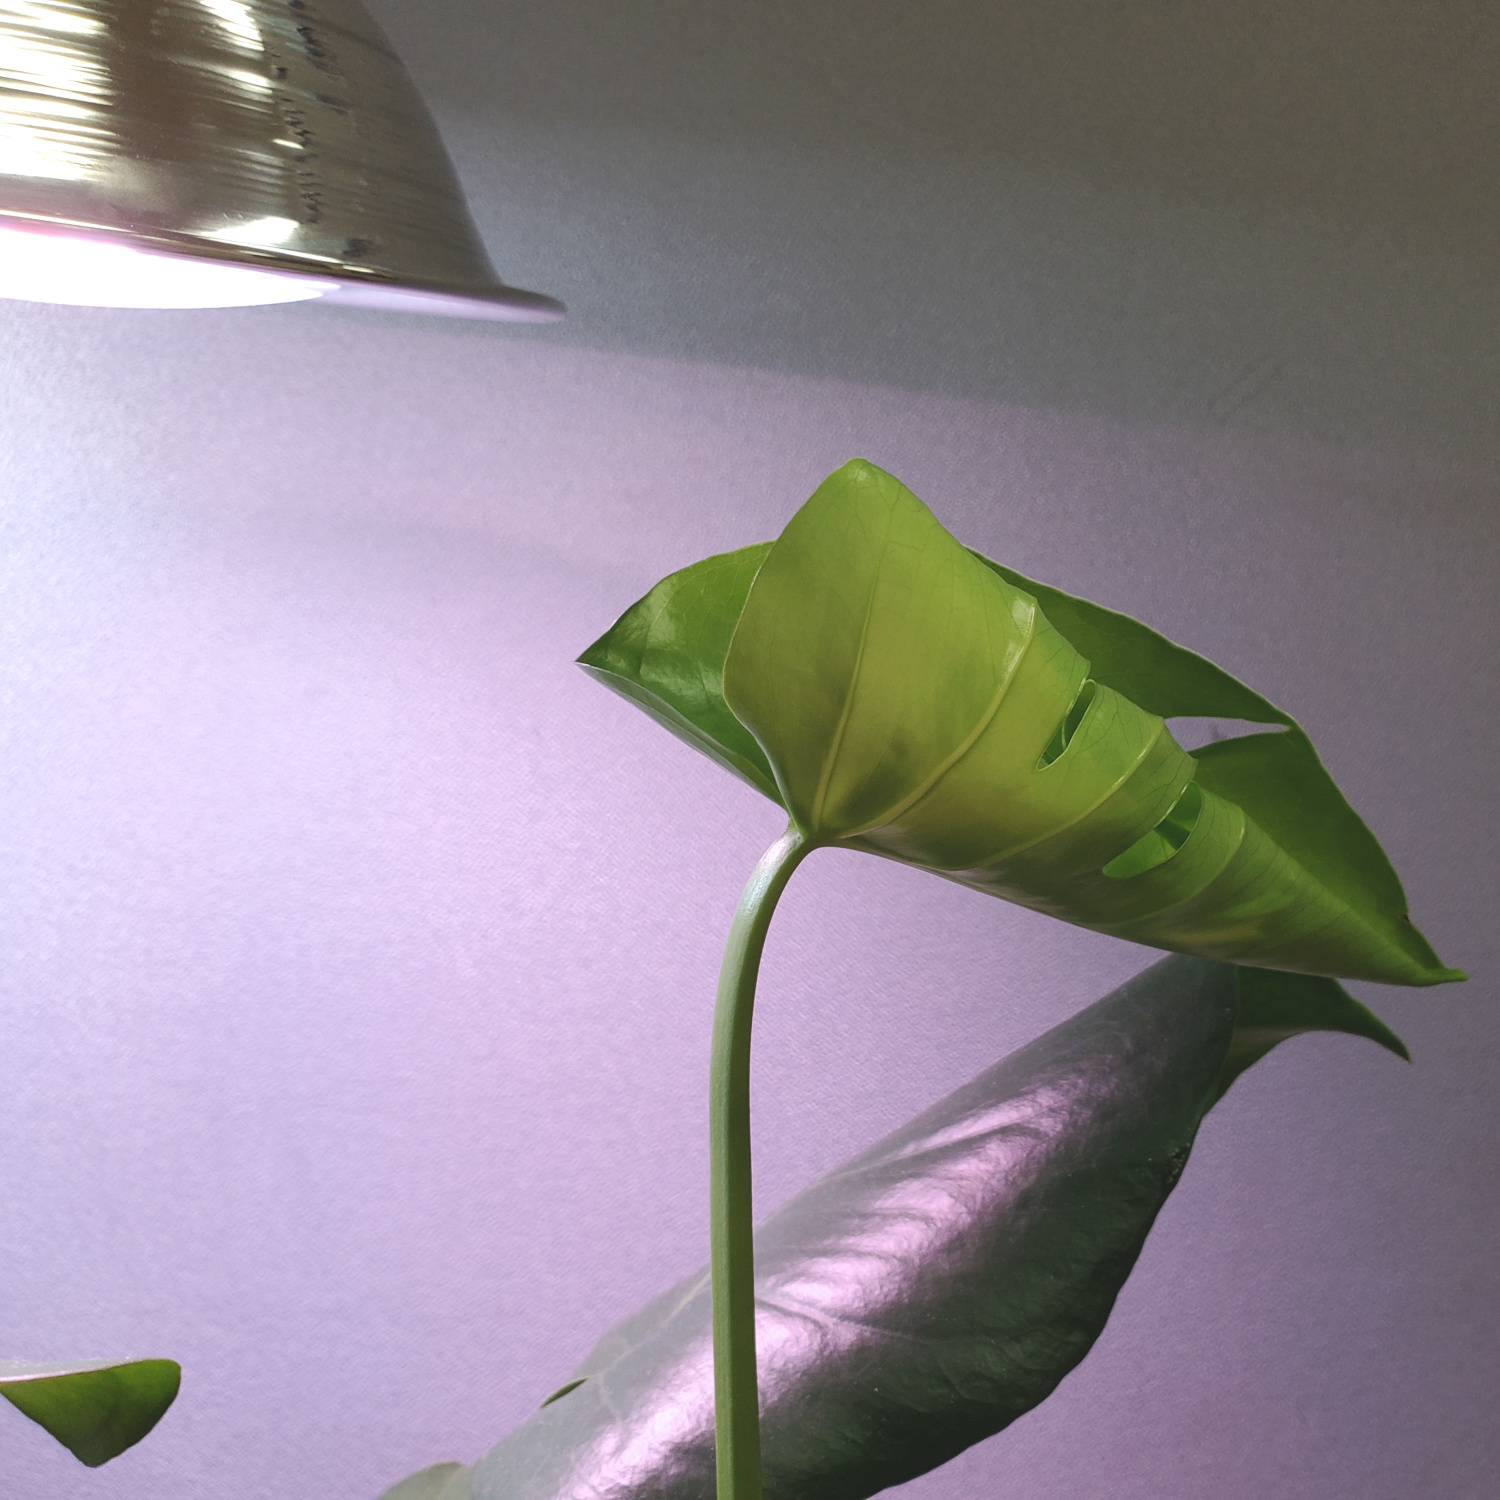 I thought this was a philodendron, but now I'm not so sure